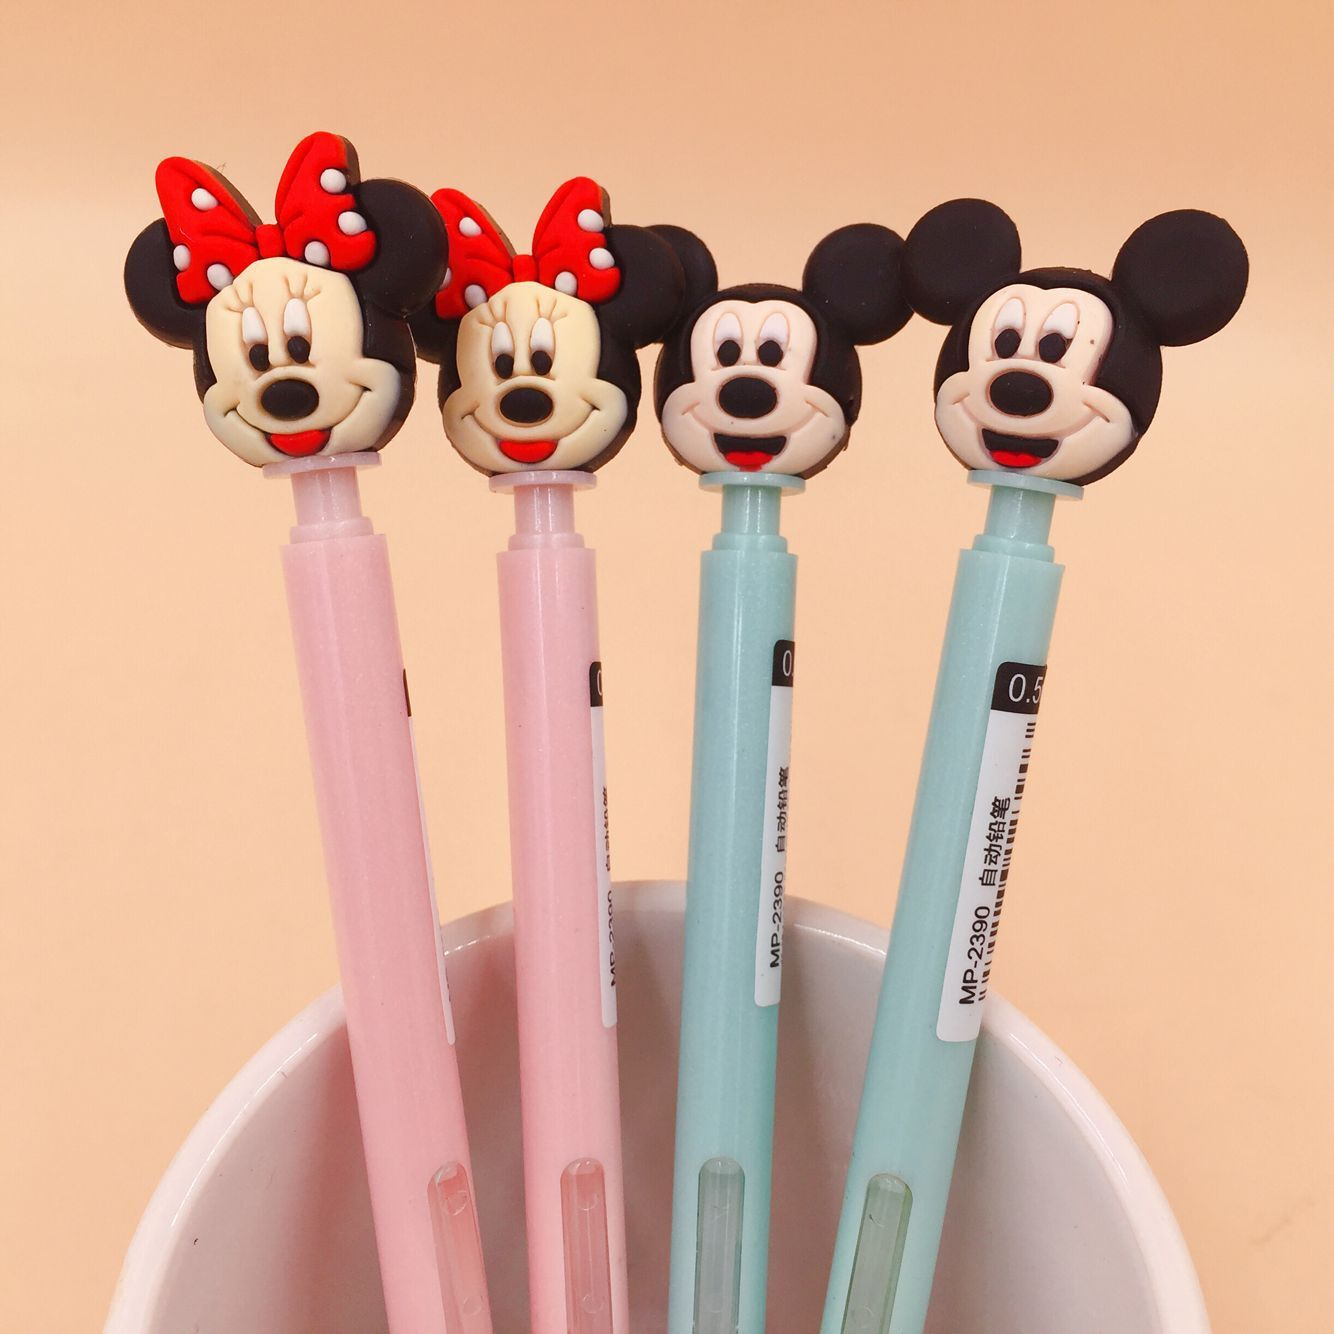 2pcs/1 Lot Cartoon Mickey Mouse Press Mechanical Pencils School Office Supply Student Stationery Kids Gift Automatic Pencil